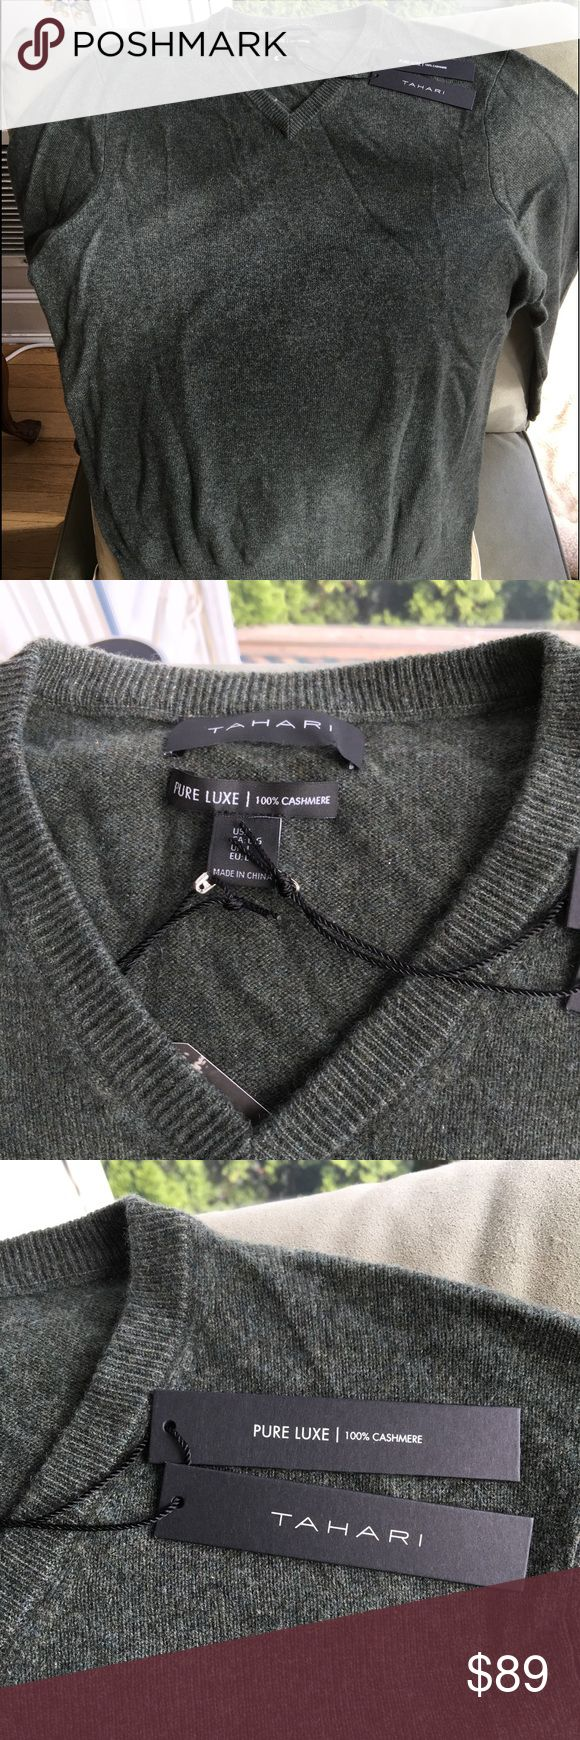 Tahari men's cashmere sweater- large Beautiful heather green 100% cashmere sweater- new with tags. V neck. Tahari Sweaters V-Neck